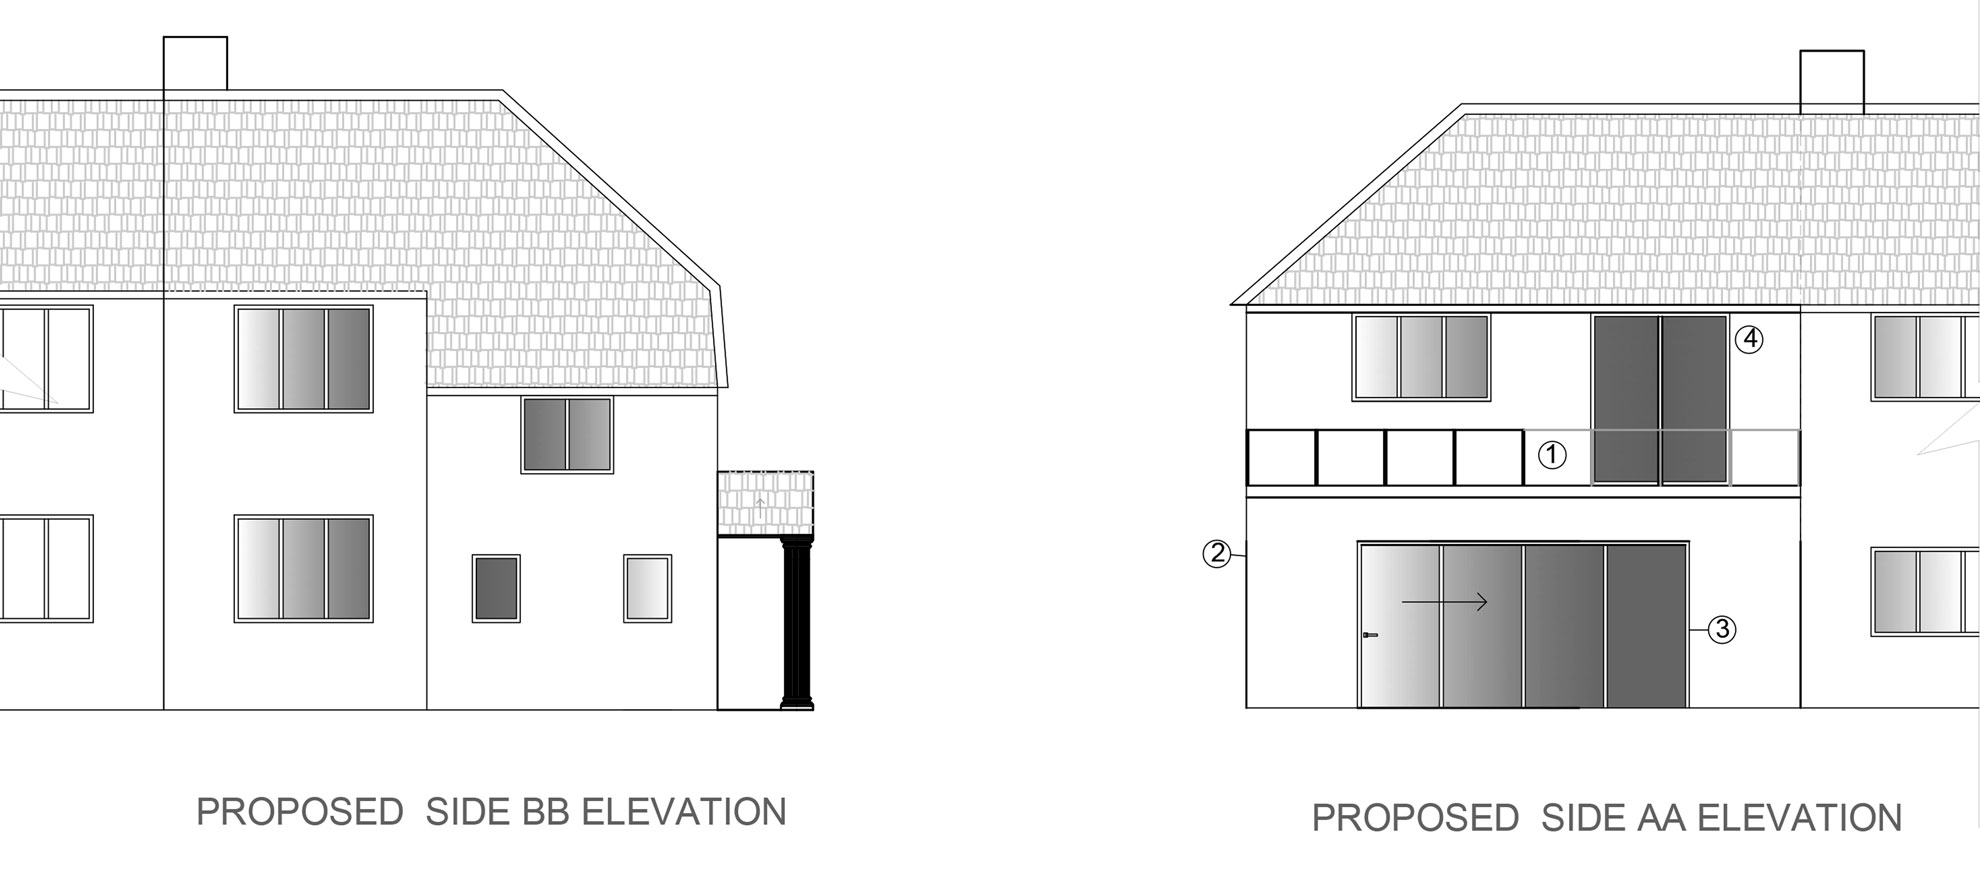 Roof-Terrace-&-Garage-conversion-in-Croydon-PROPOSED-ELEVATIONS